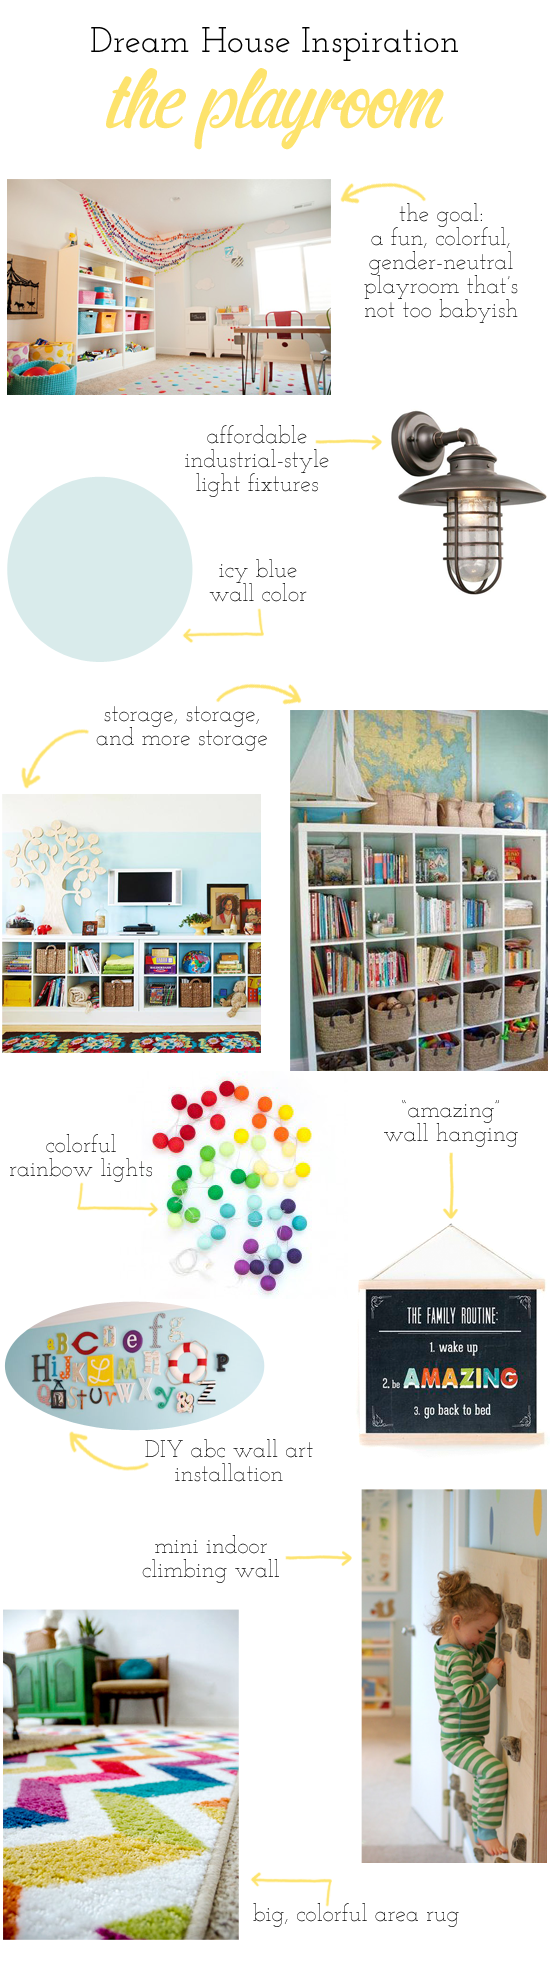 Children S And Kids Room Ideas Designs Inspiration: Building A Dream House: Playroom Inspiration